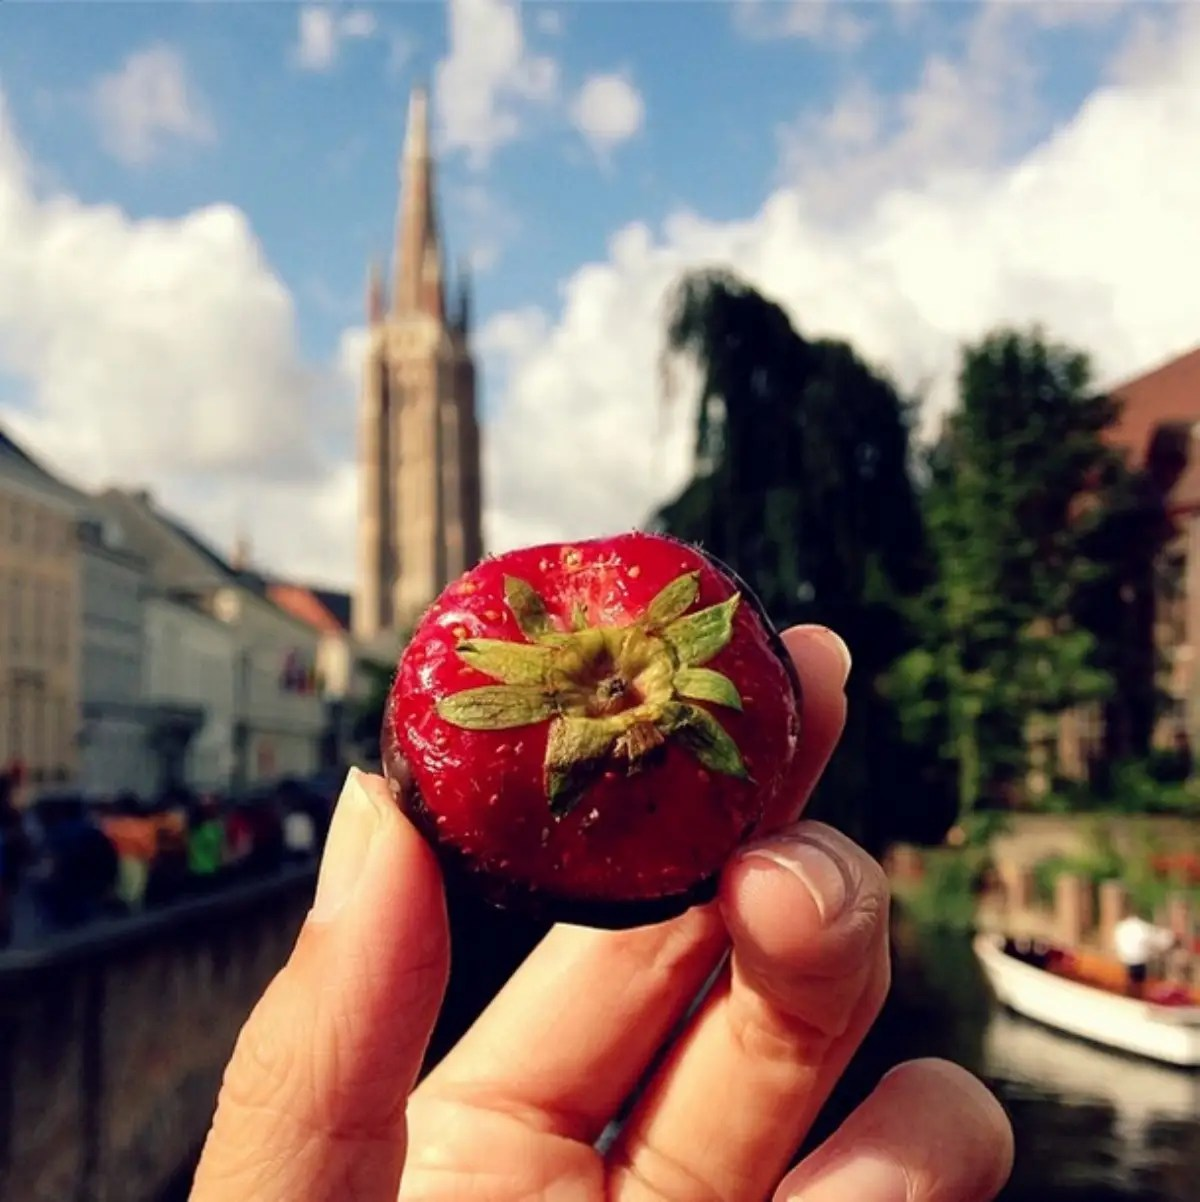 Godiva chocolate strawberry in Brugge, a pretty little town in Belgium that will make you feel like you've just time-traveled 500 years back in time.